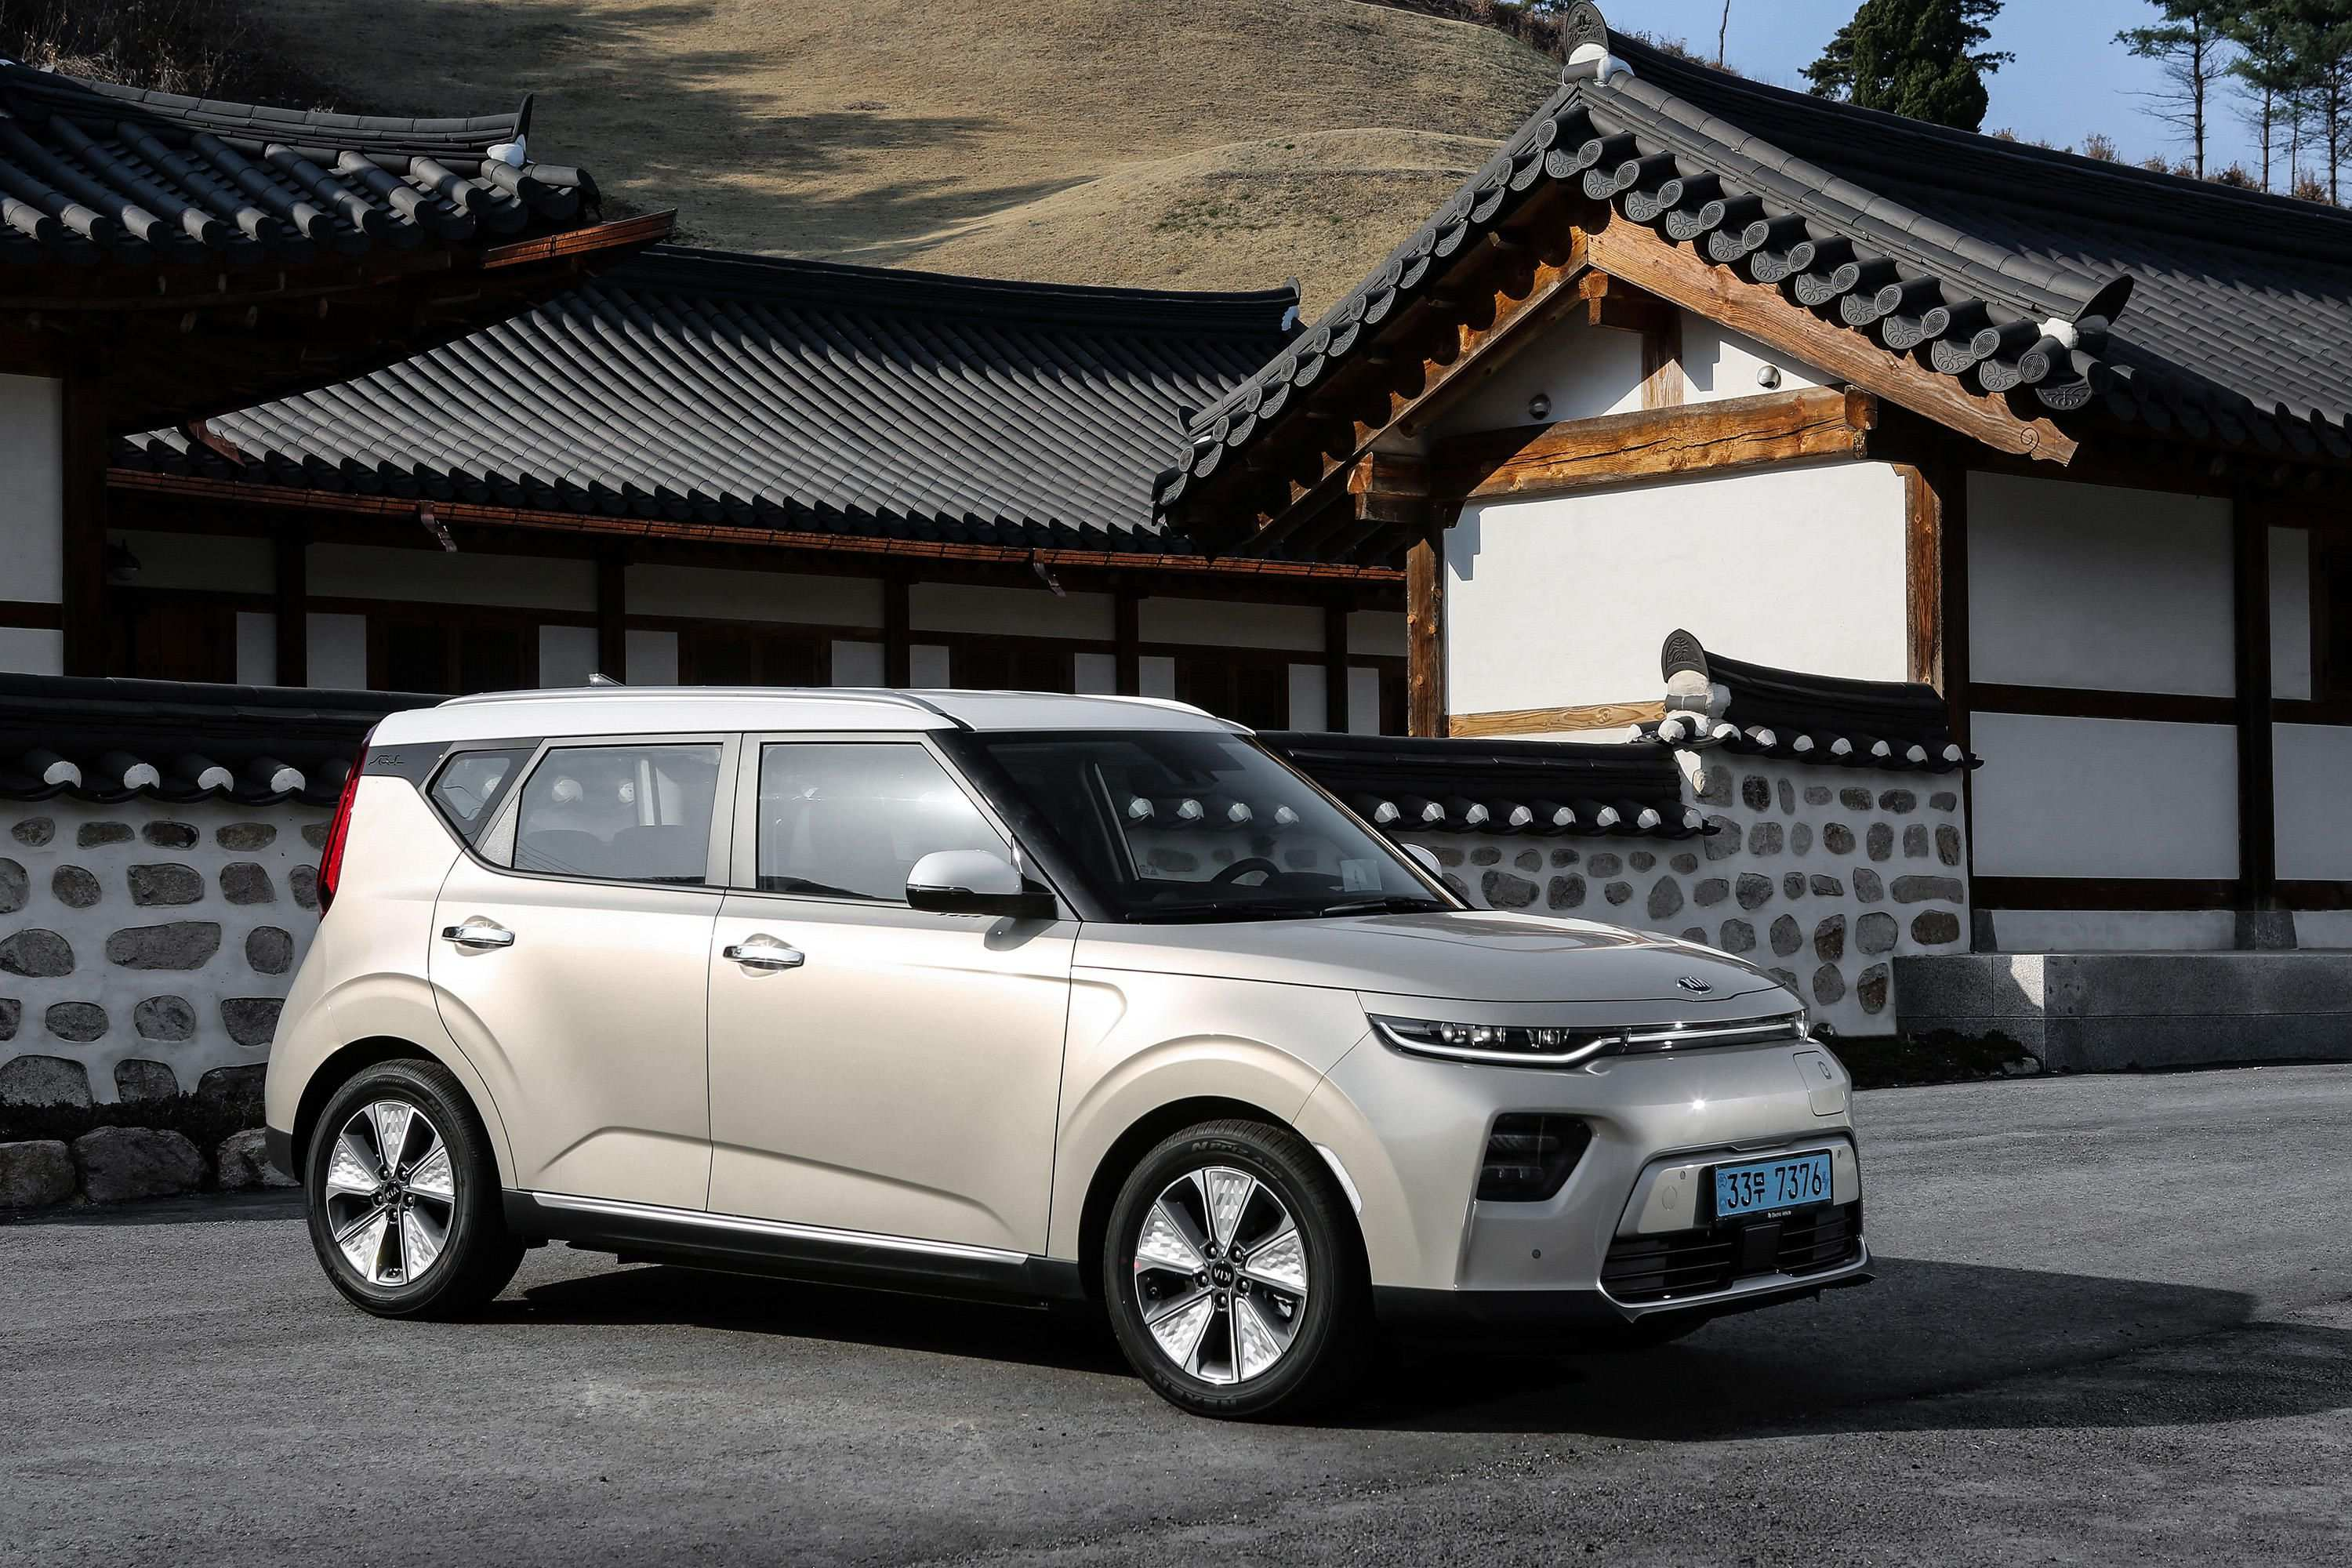 22 Great When Will 2020 Kia Soul Be Available Specs with When Will 2020 Kia Soul Be Available